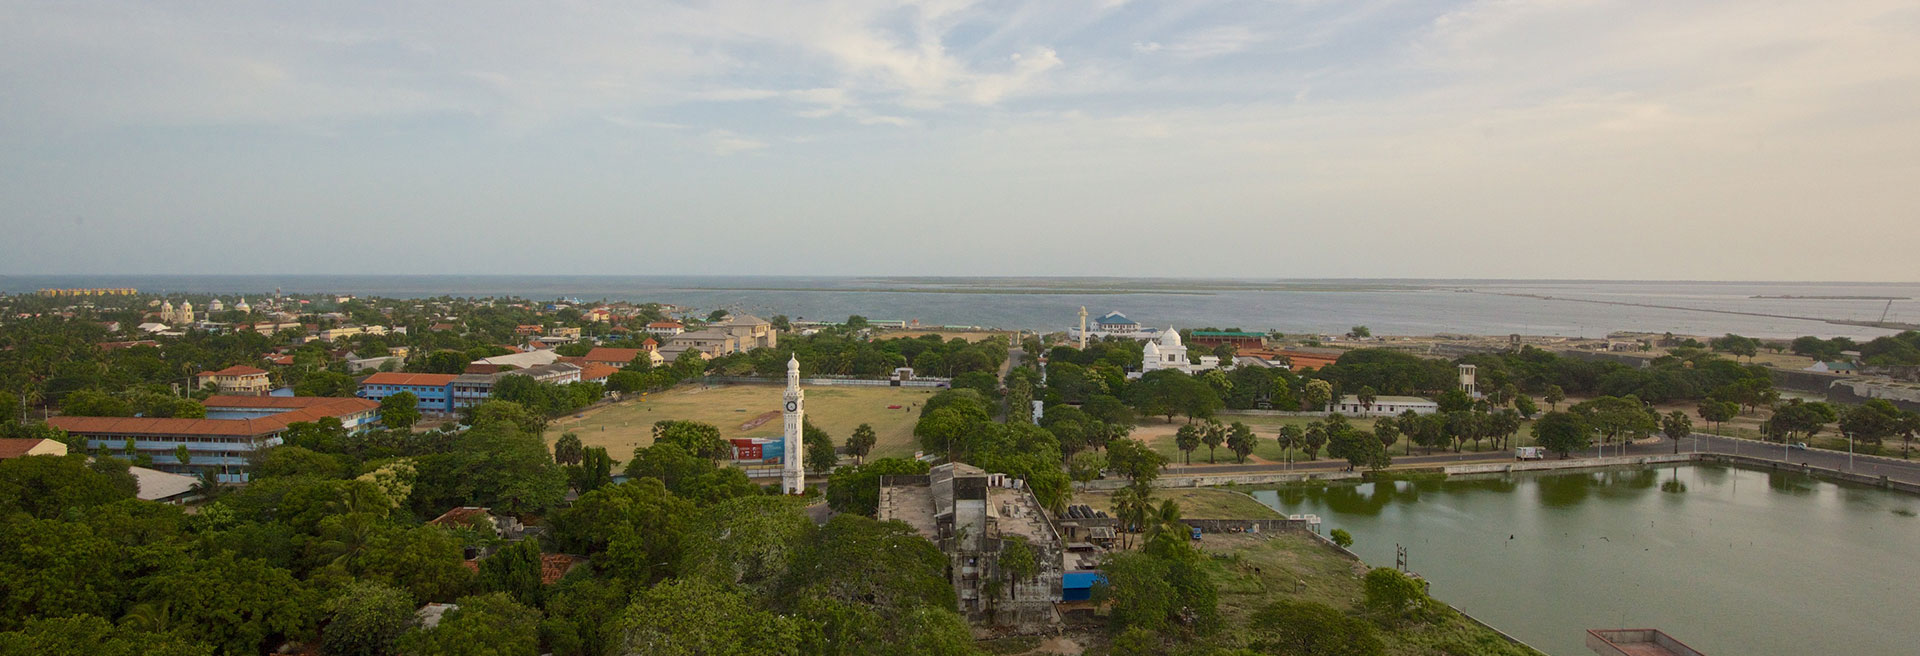 areal view of jaffna